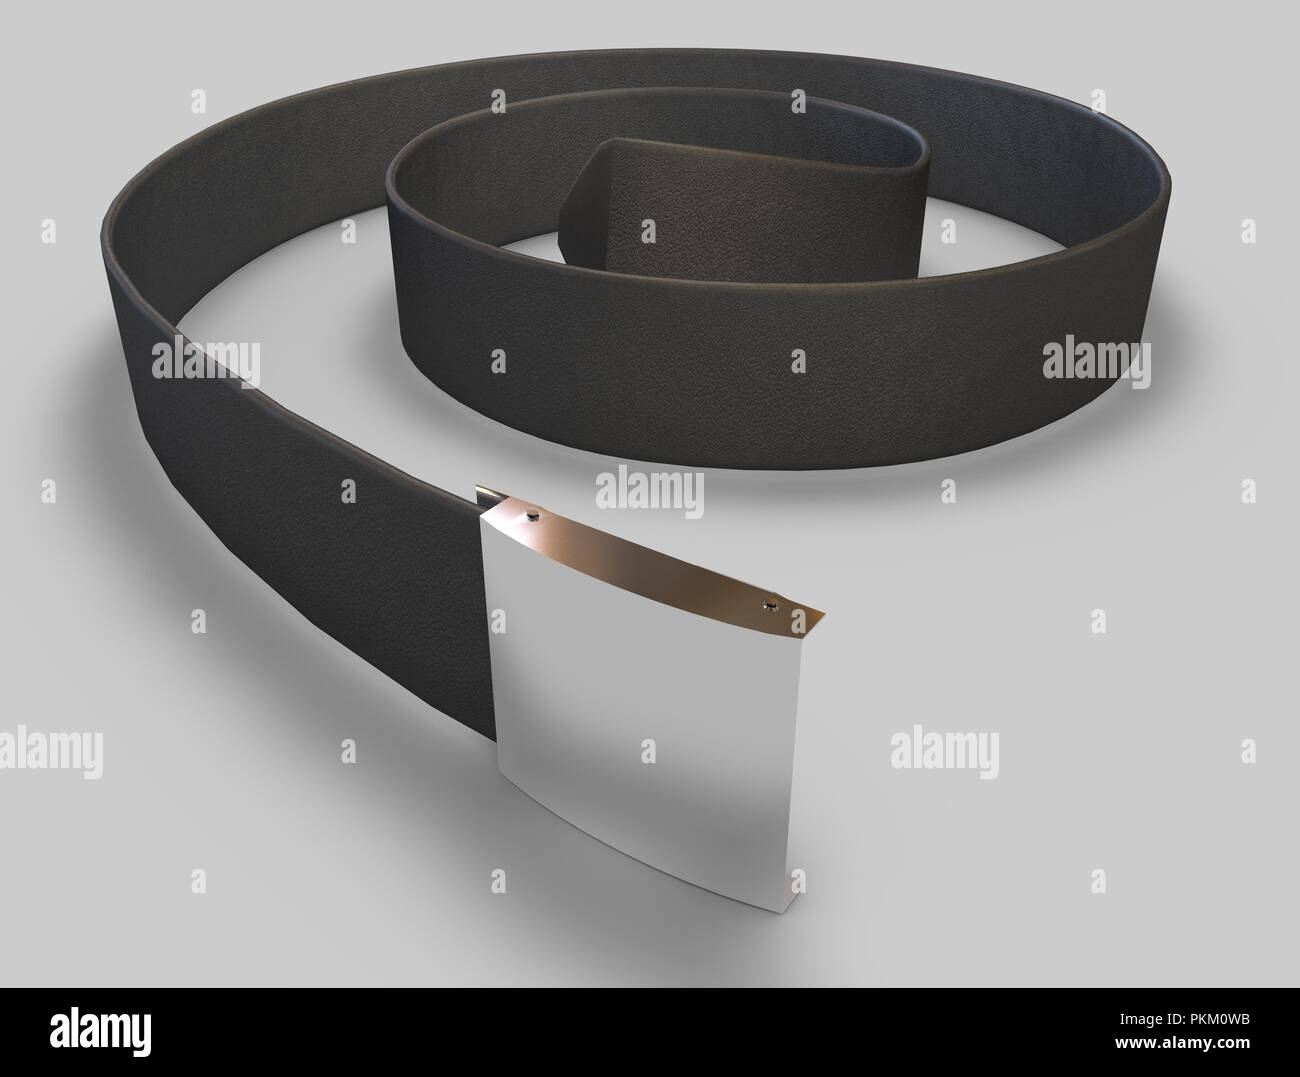 Leather belt 3d illustration - Stock Image